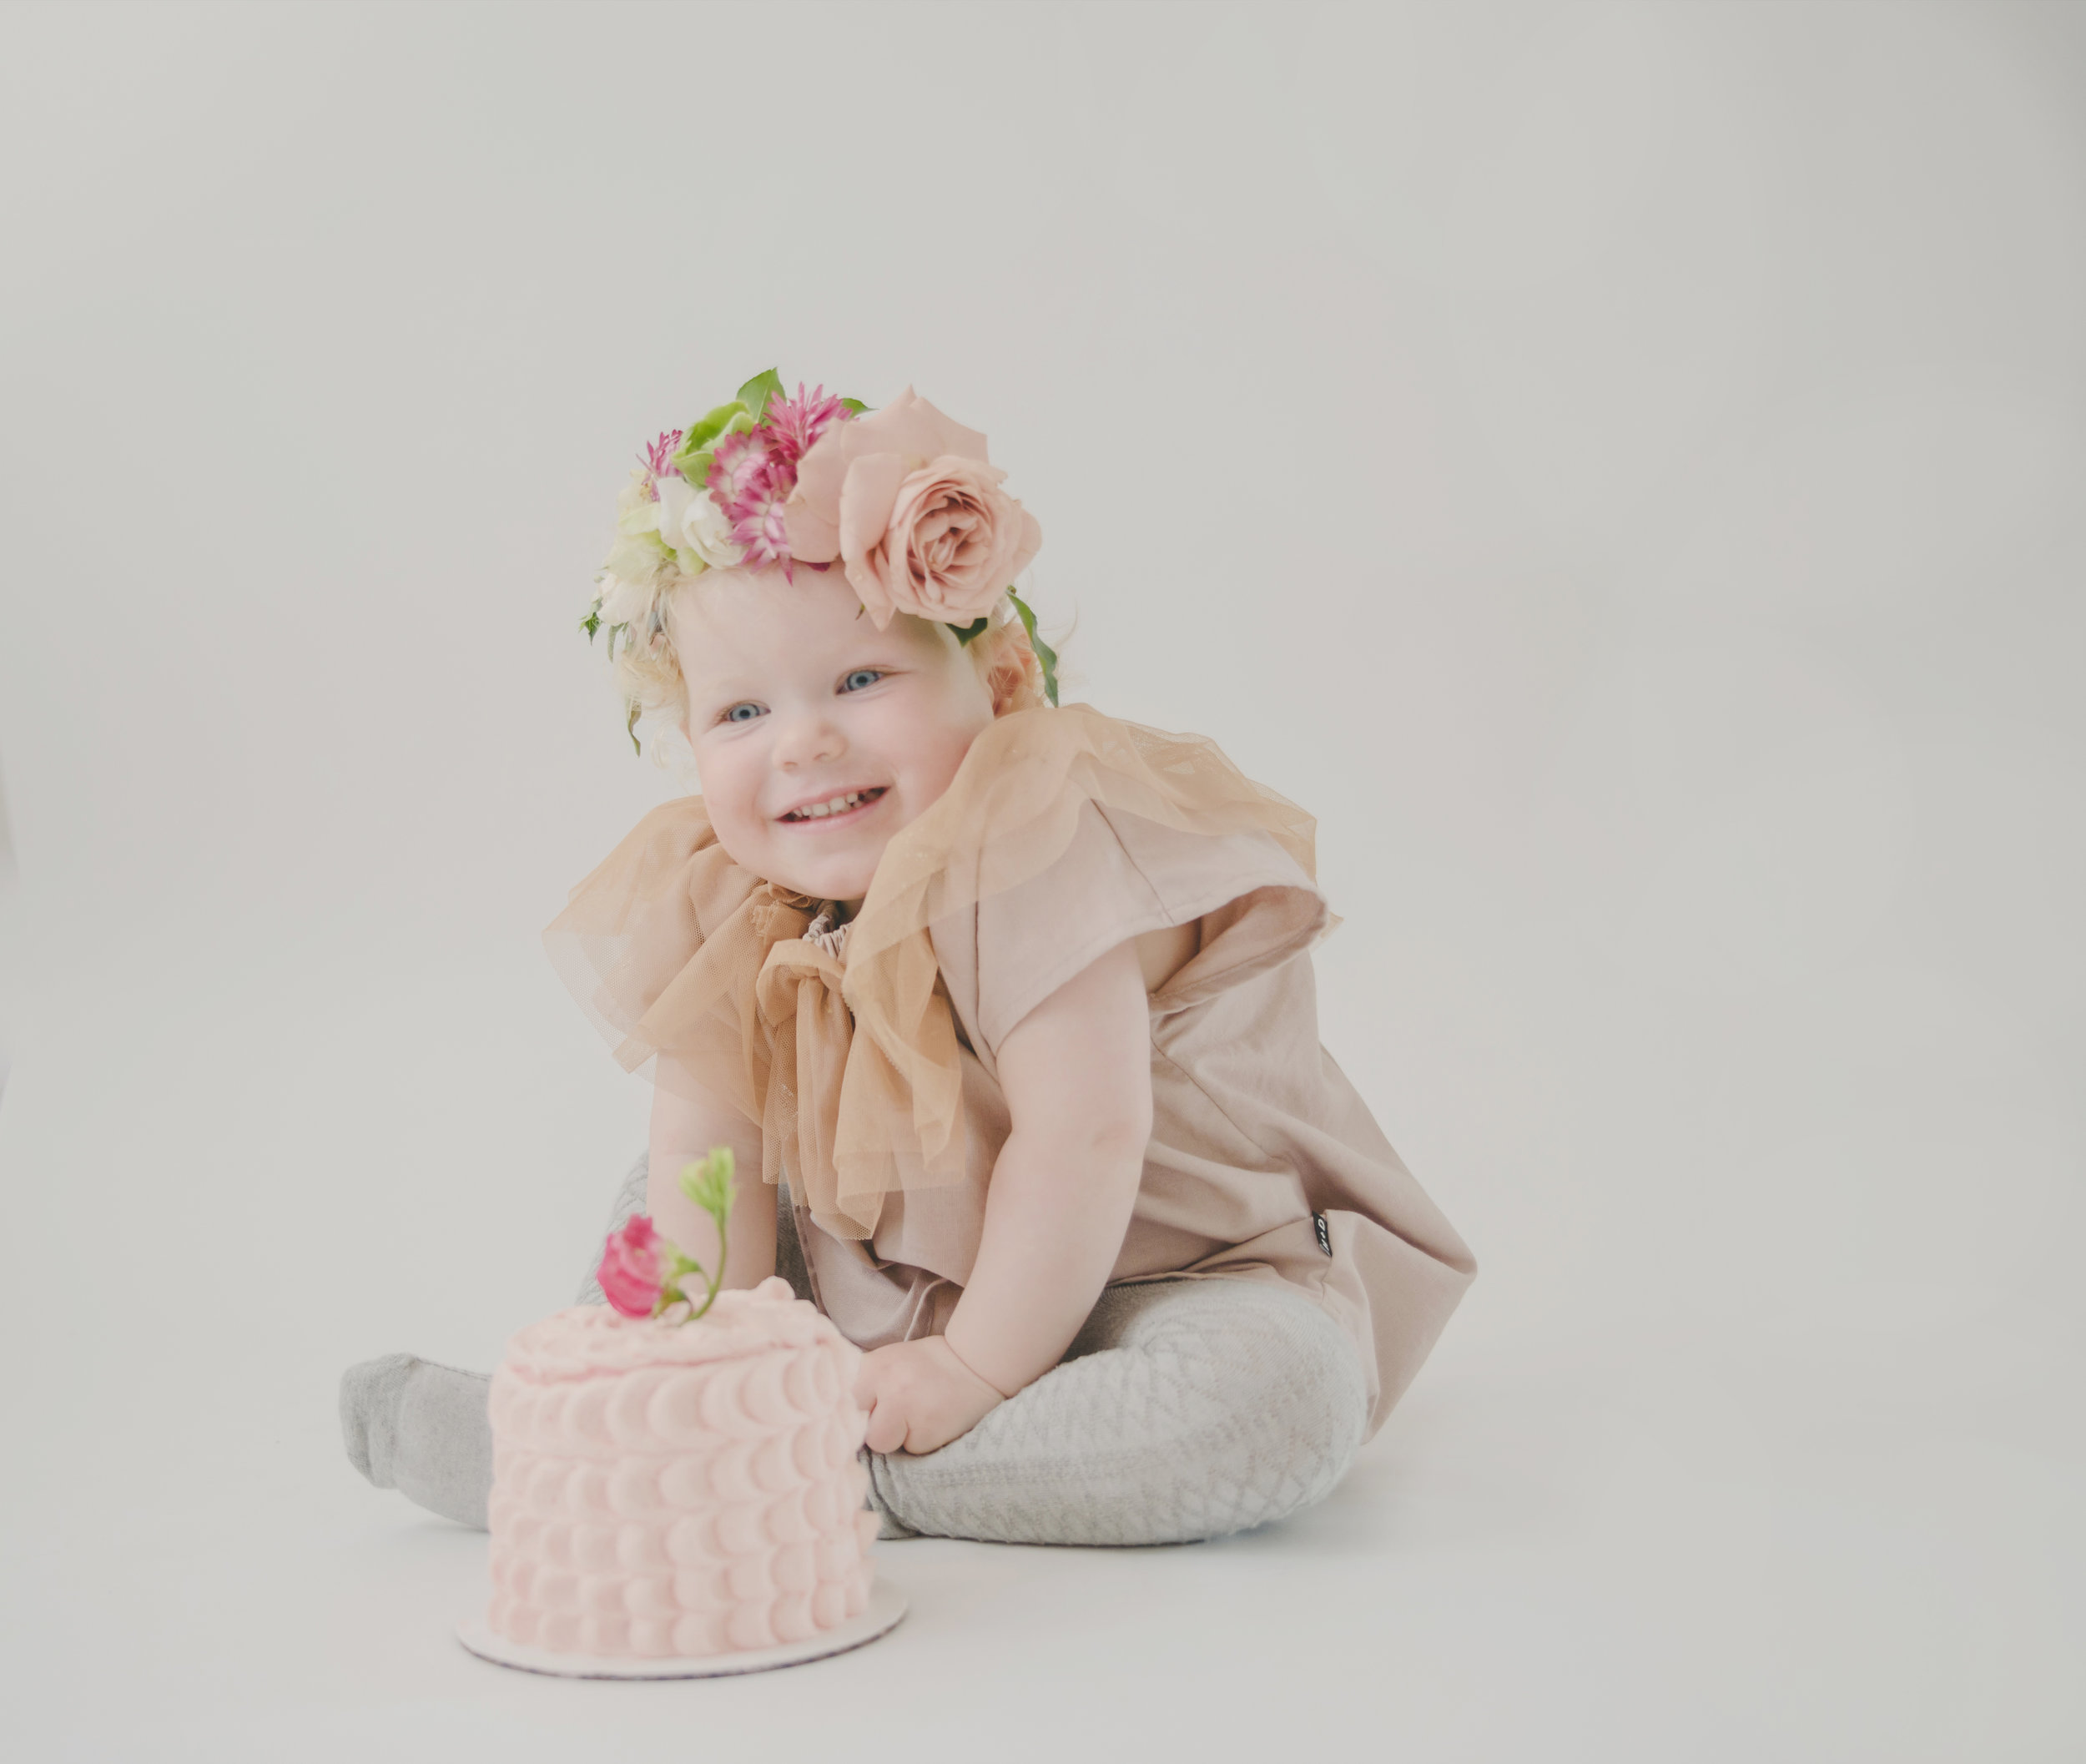 Floral crowns, frilly dresses & cheeky smiles